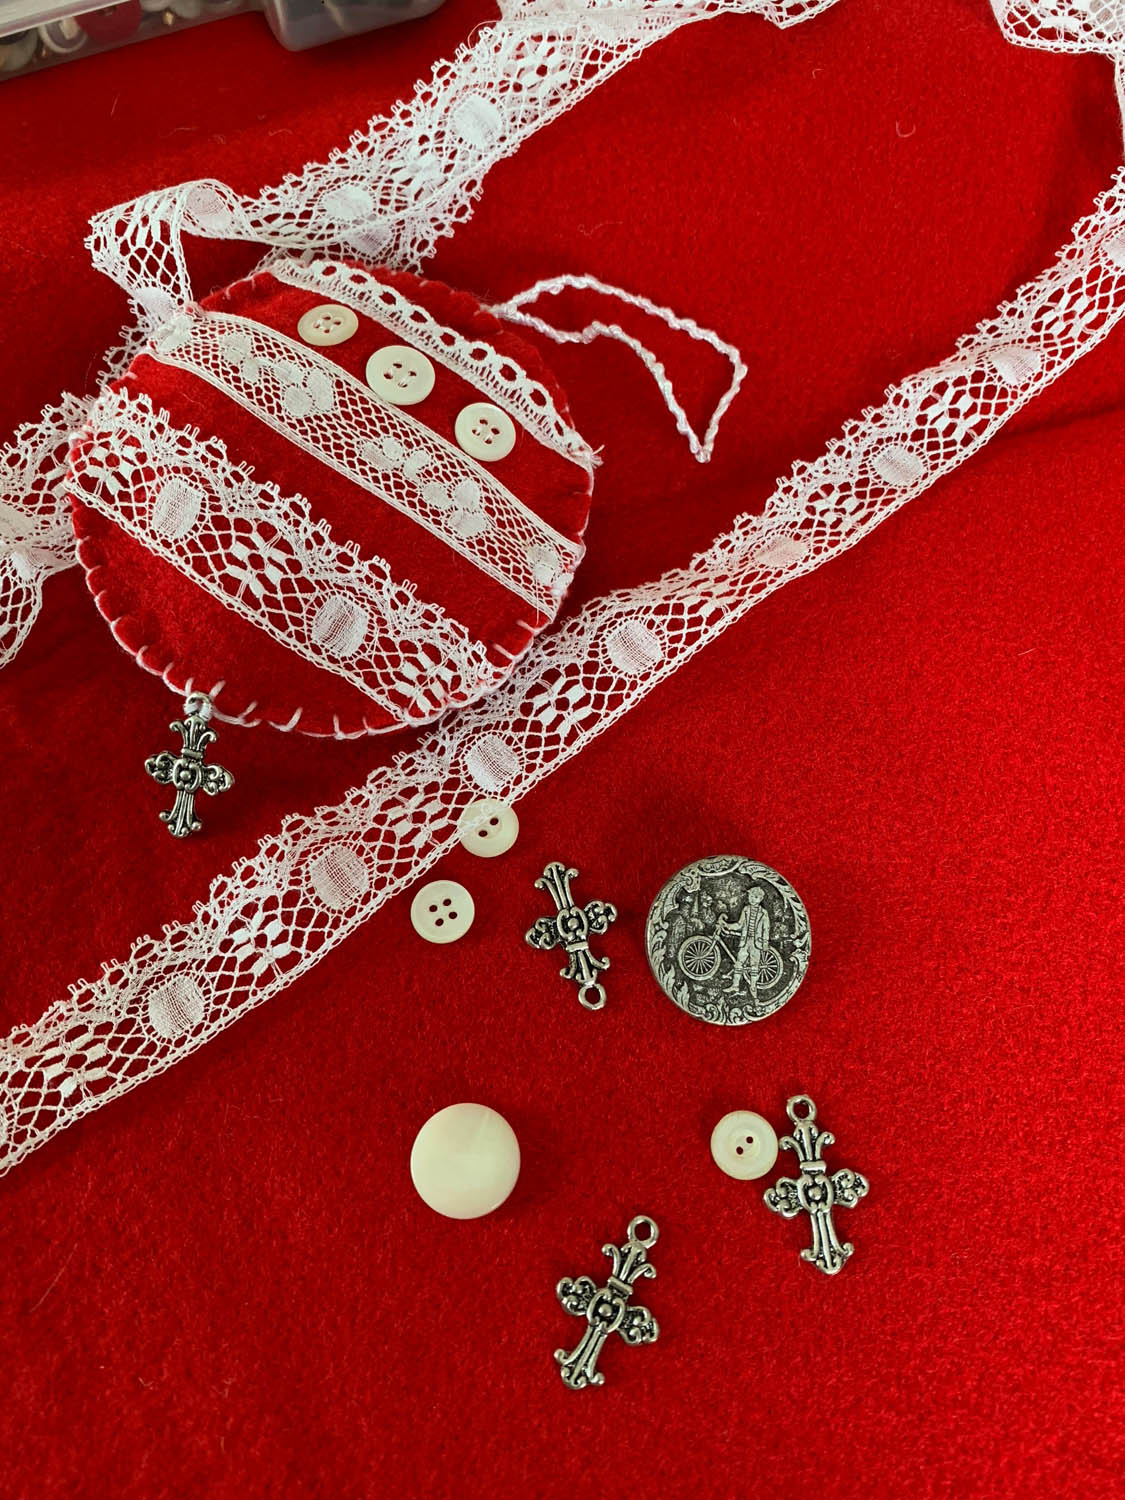 finished lace embellished ornament on top of red felt with scattered extra lace trims buttons and charms